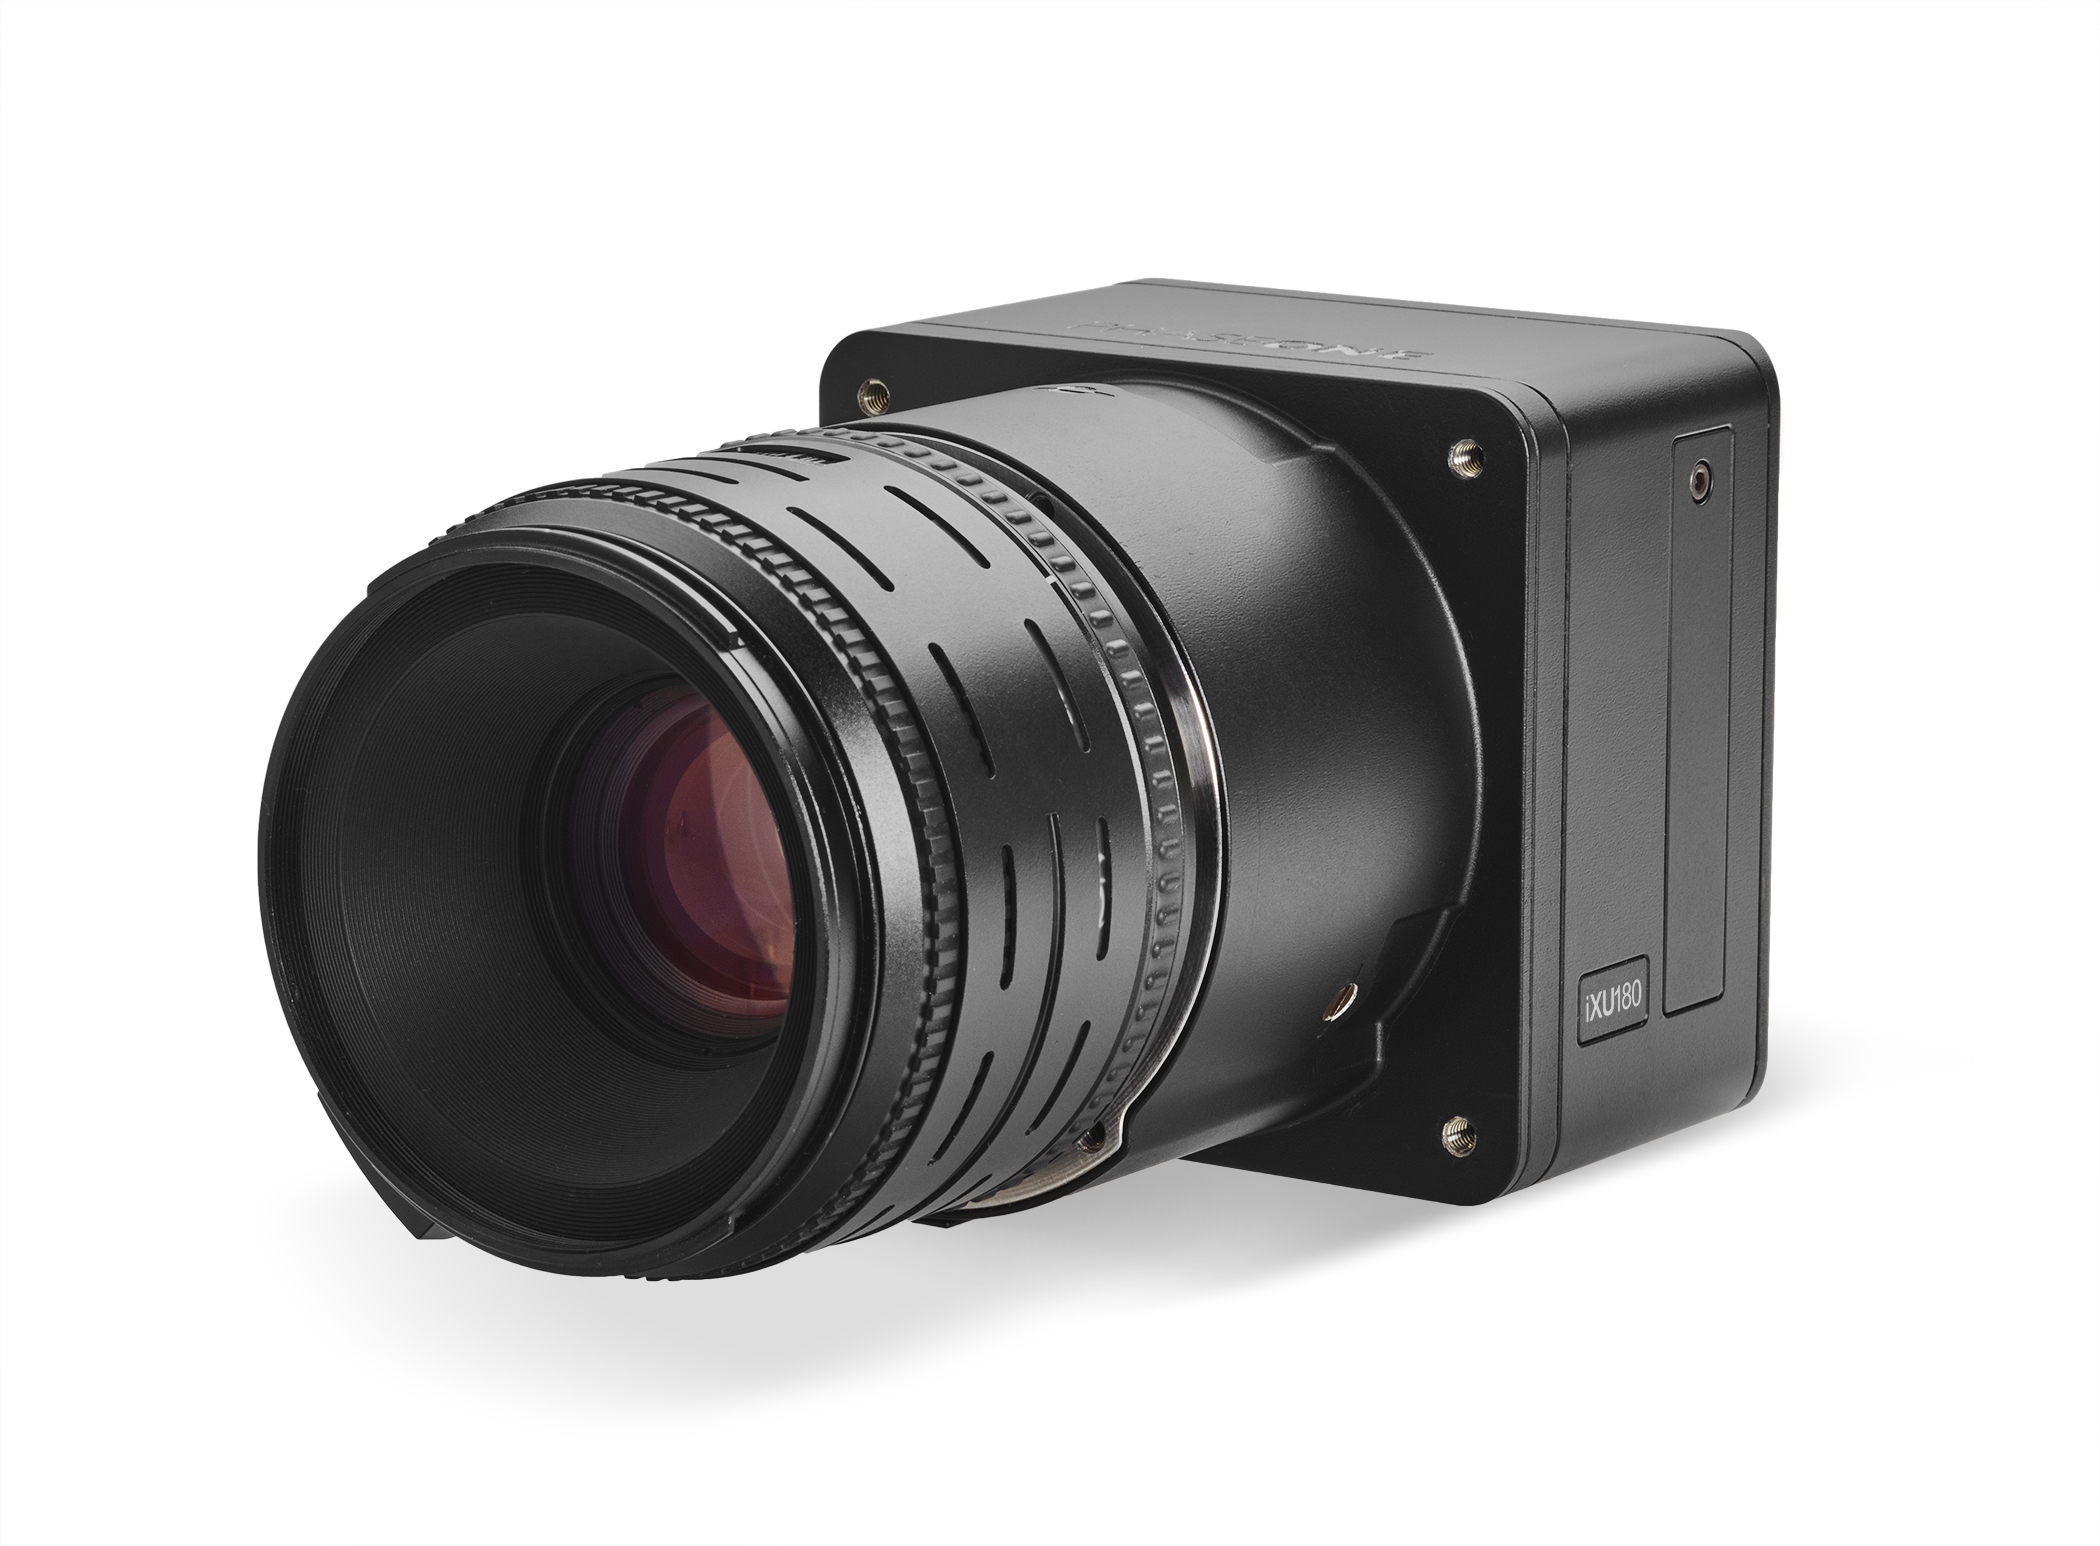 Phase One Industrial, a manufacturer                     and provider of medium format aerial digital photography equipment and software                     solutions, announced the Phase One iXU 180 camera, on March 26, 2015.